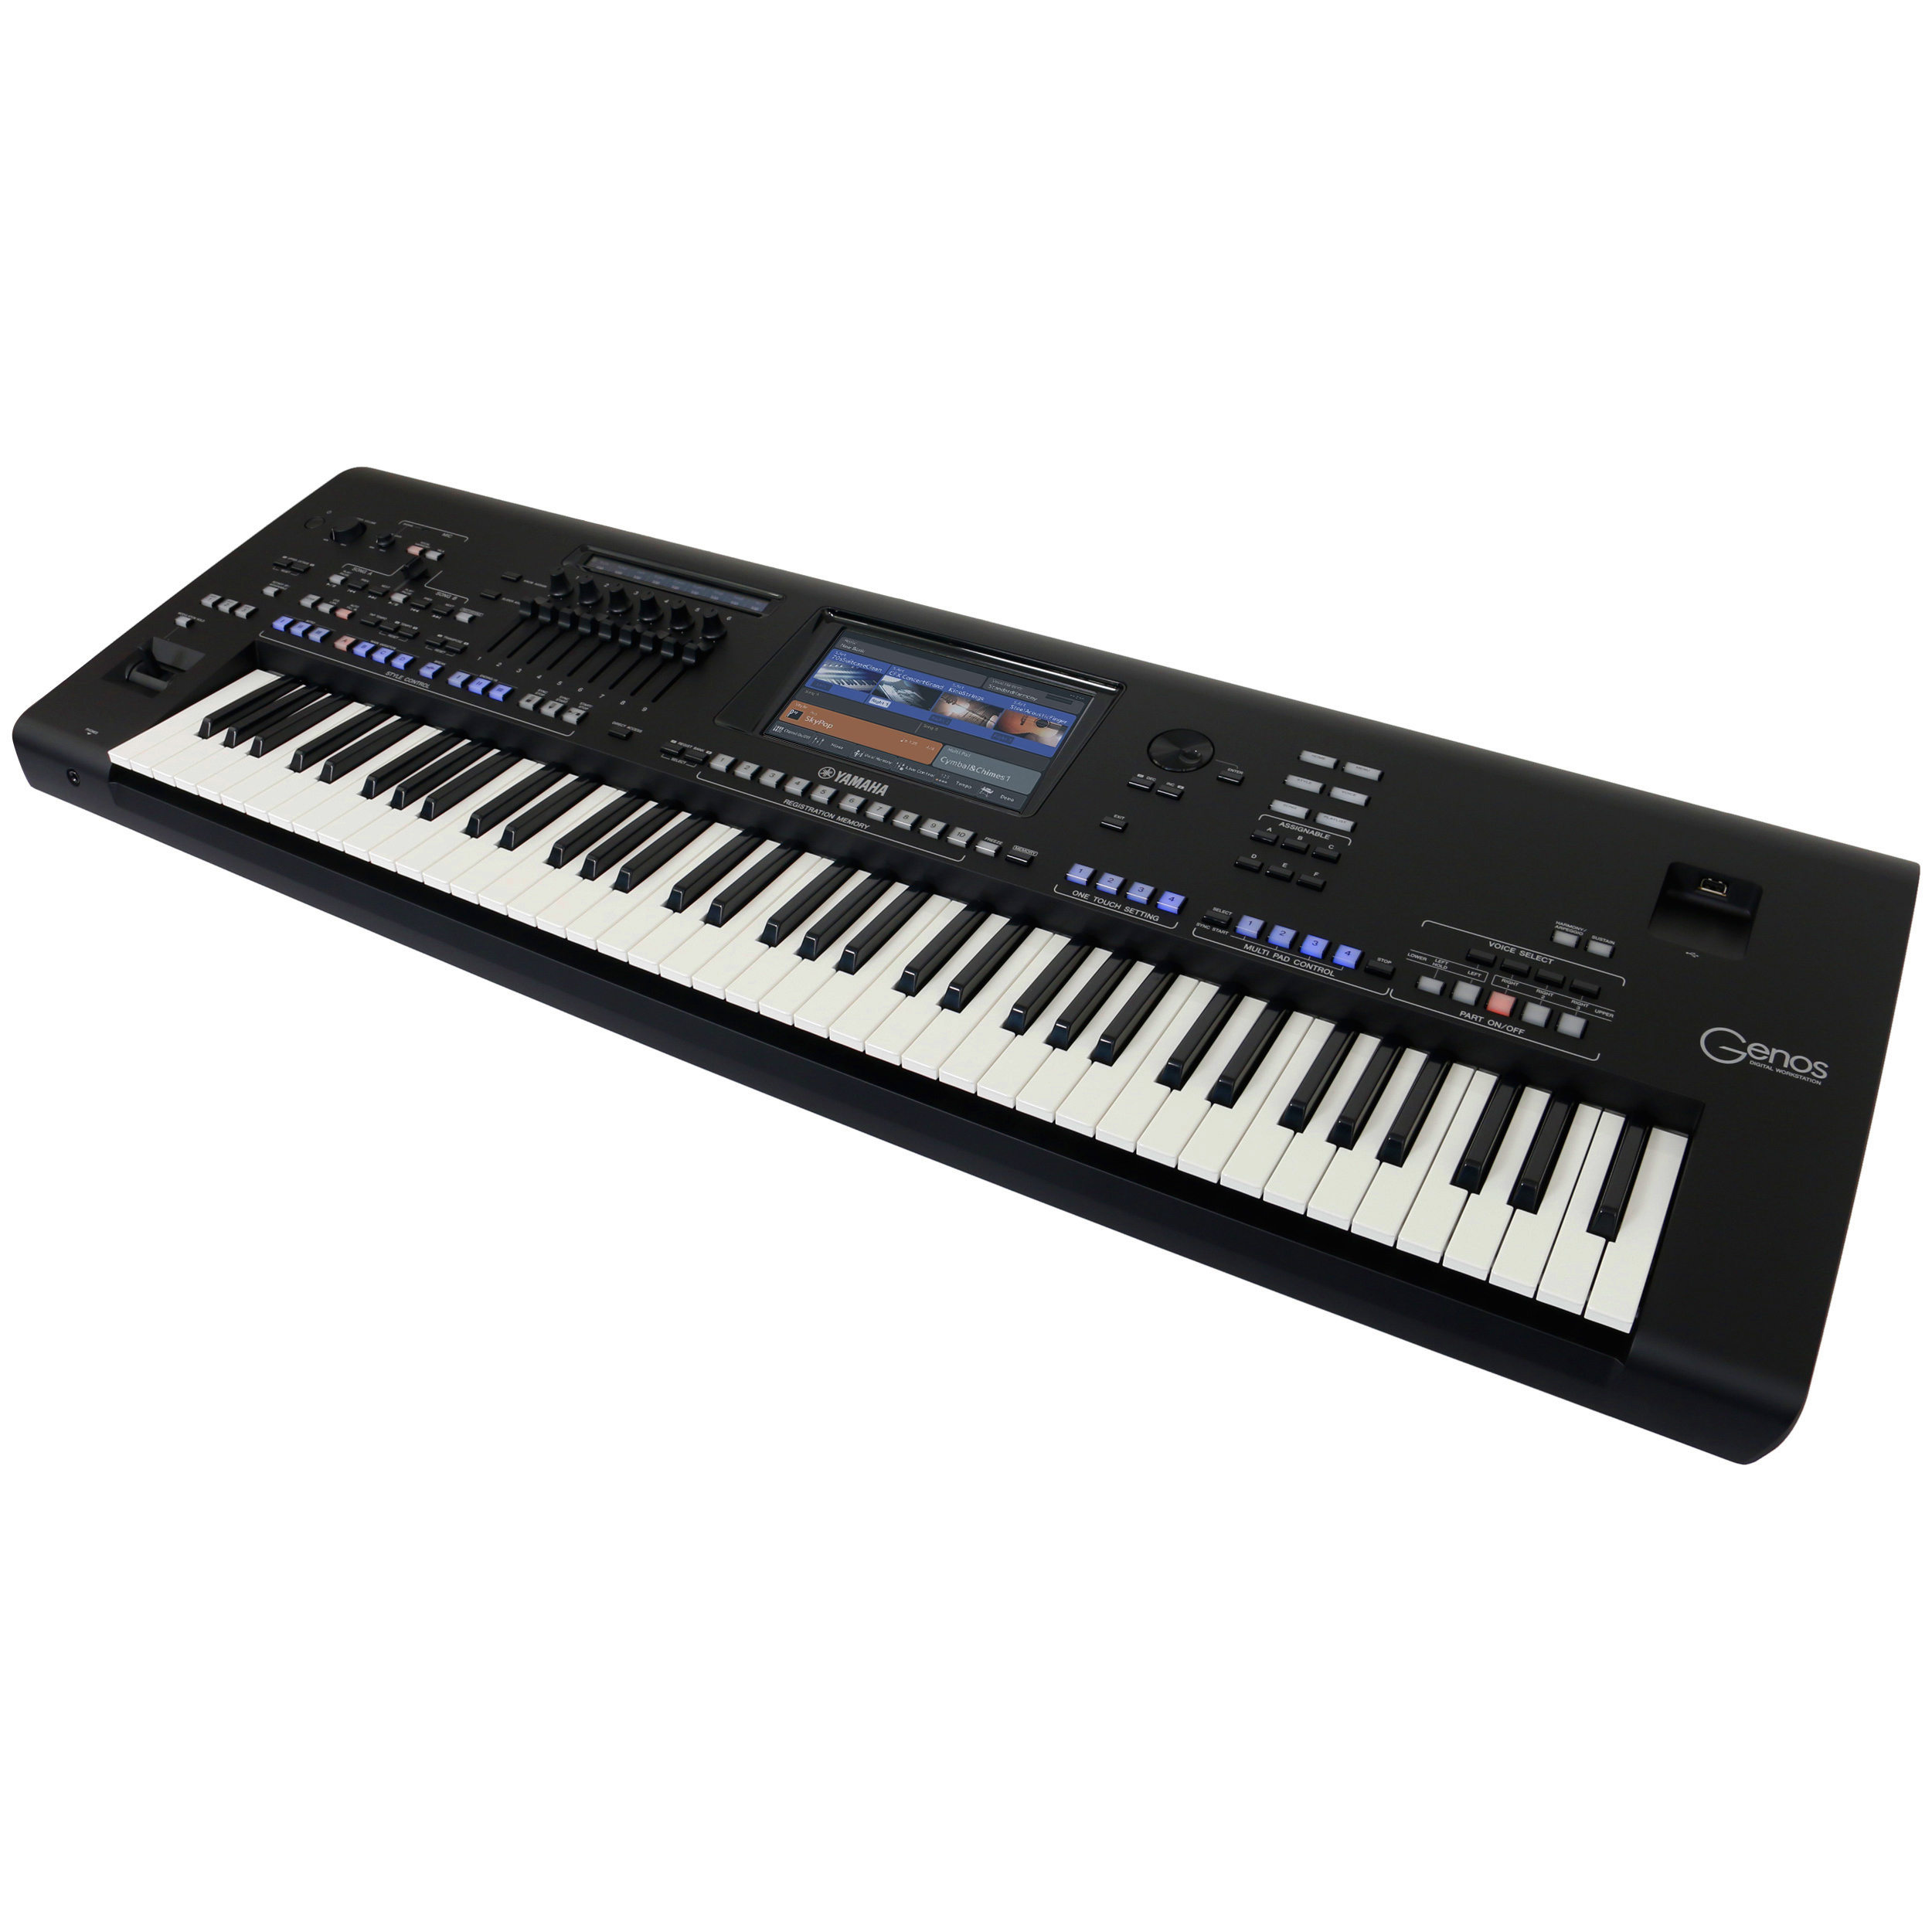 Yamaha Genos Workstation Keyboard : yamaha genos 76 note workstation keyboard kaufen bax shop ~ Vivirlamusica.com Haus und Dekorationen